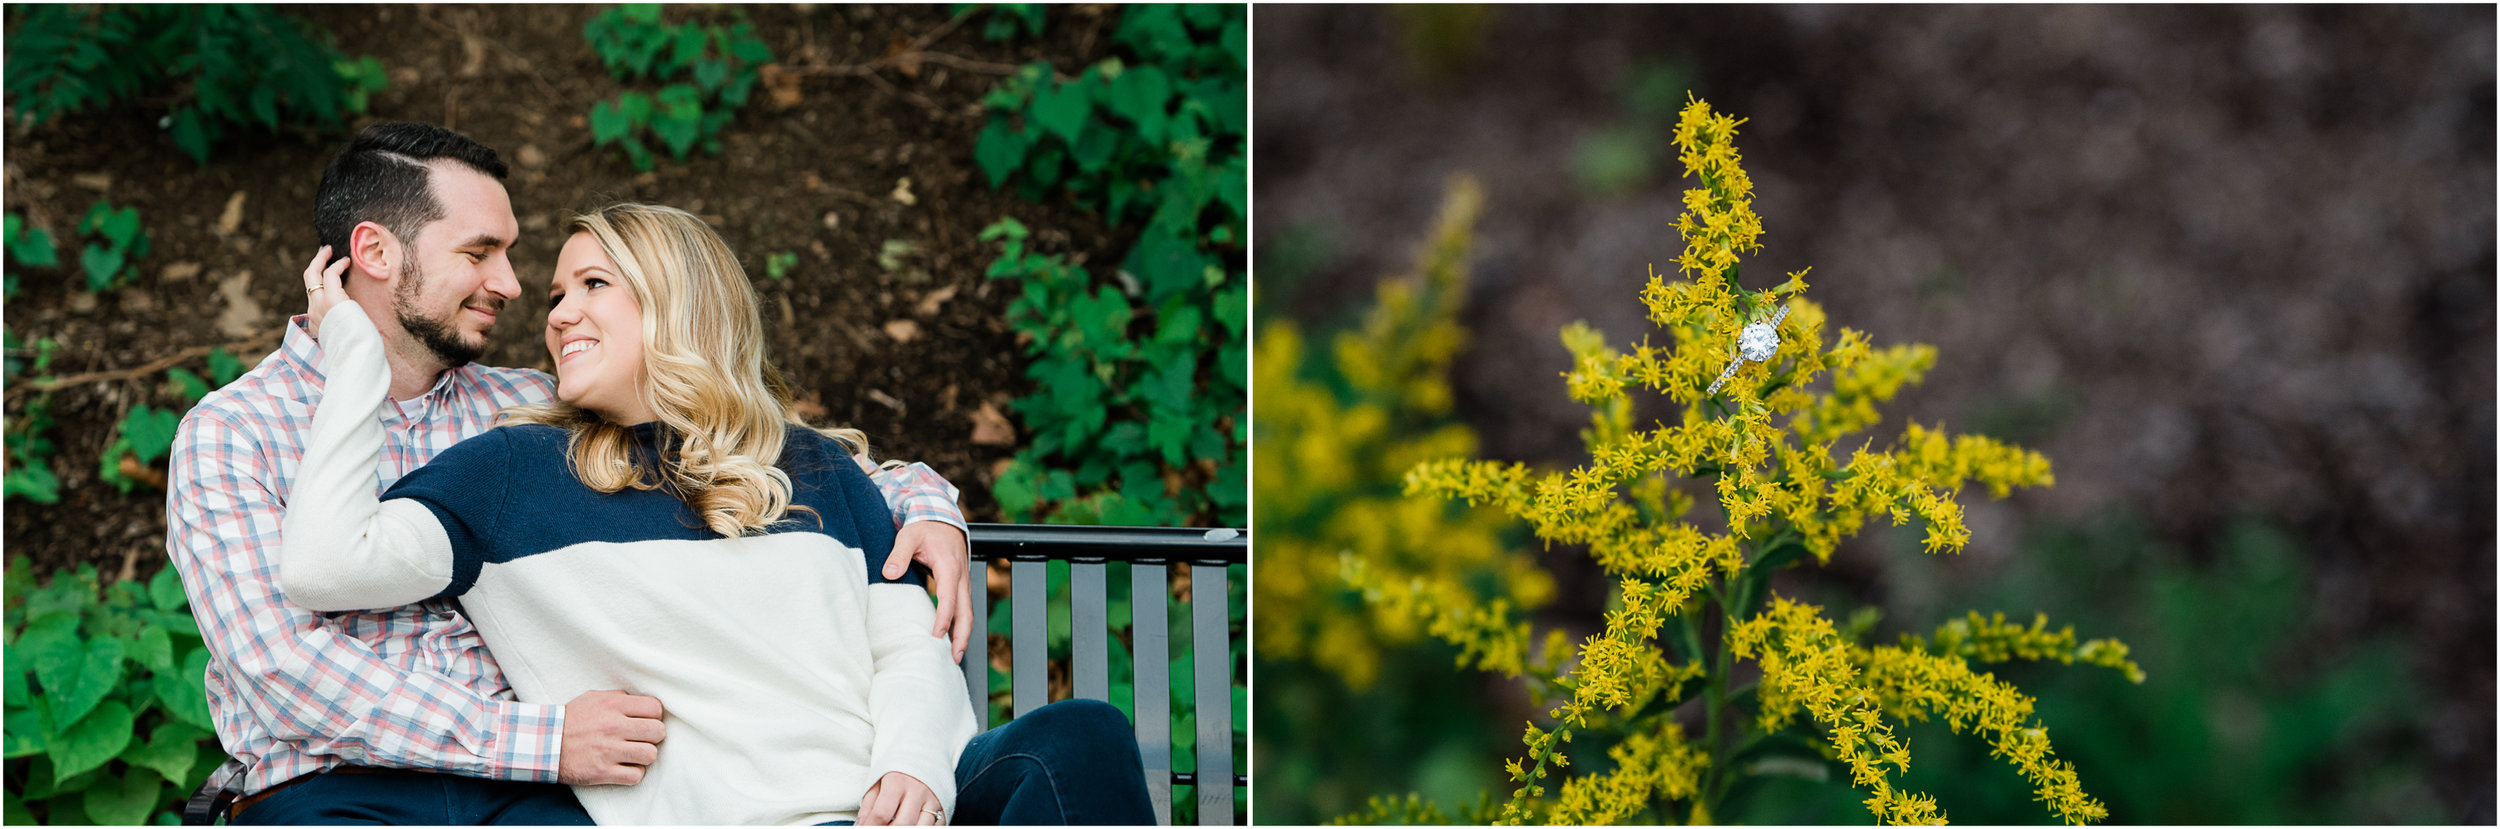 engagement session pittsburgh pa wedding photography.jpg